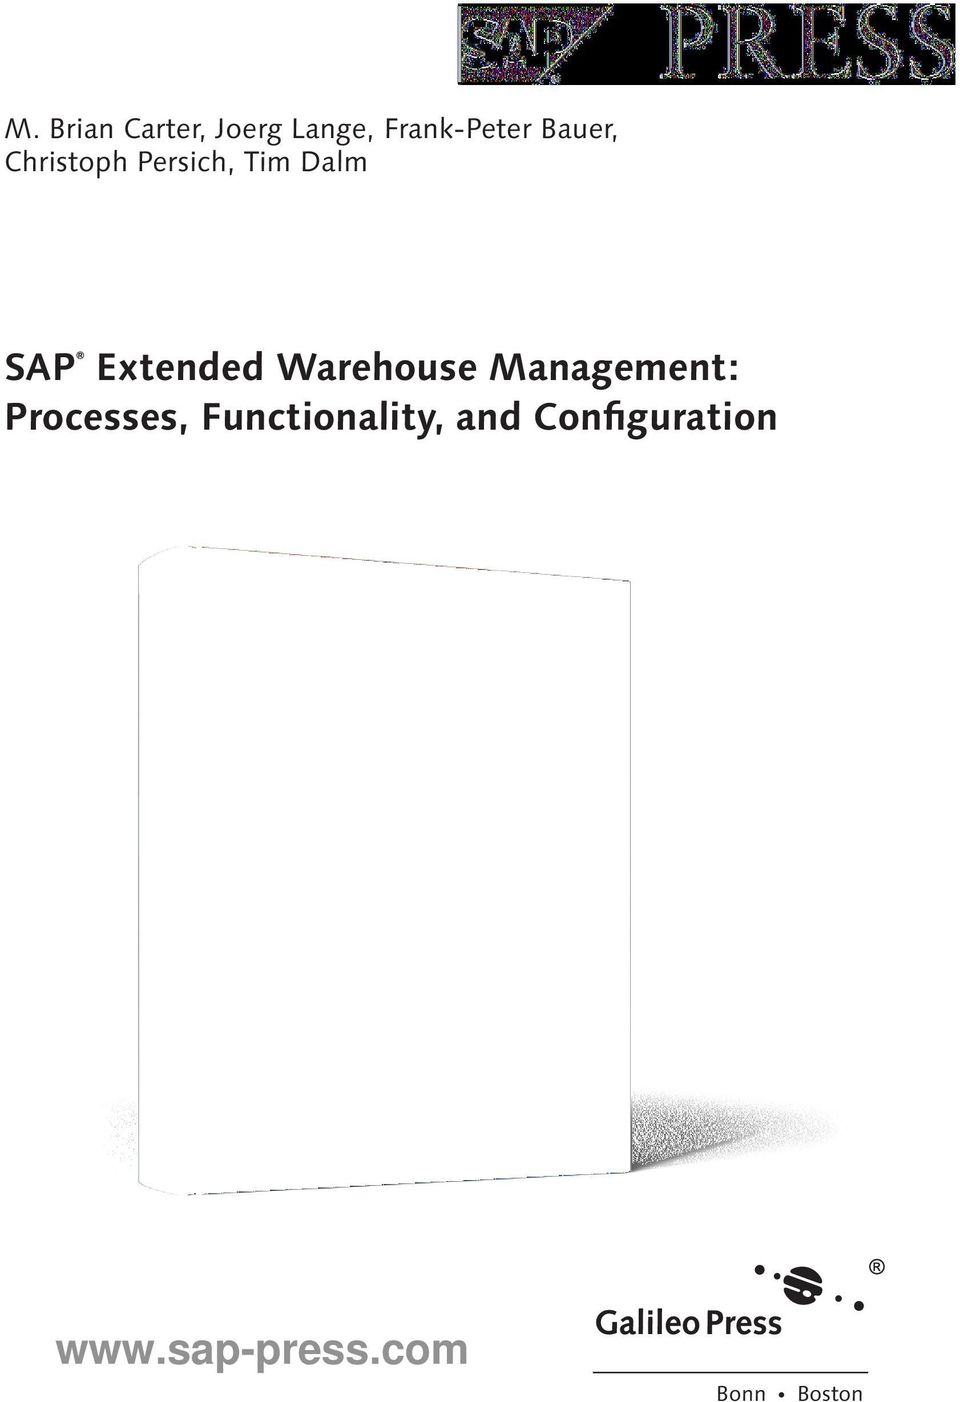 Sap Extended Warehouse Management Processes Functionality And Configuration Pdf